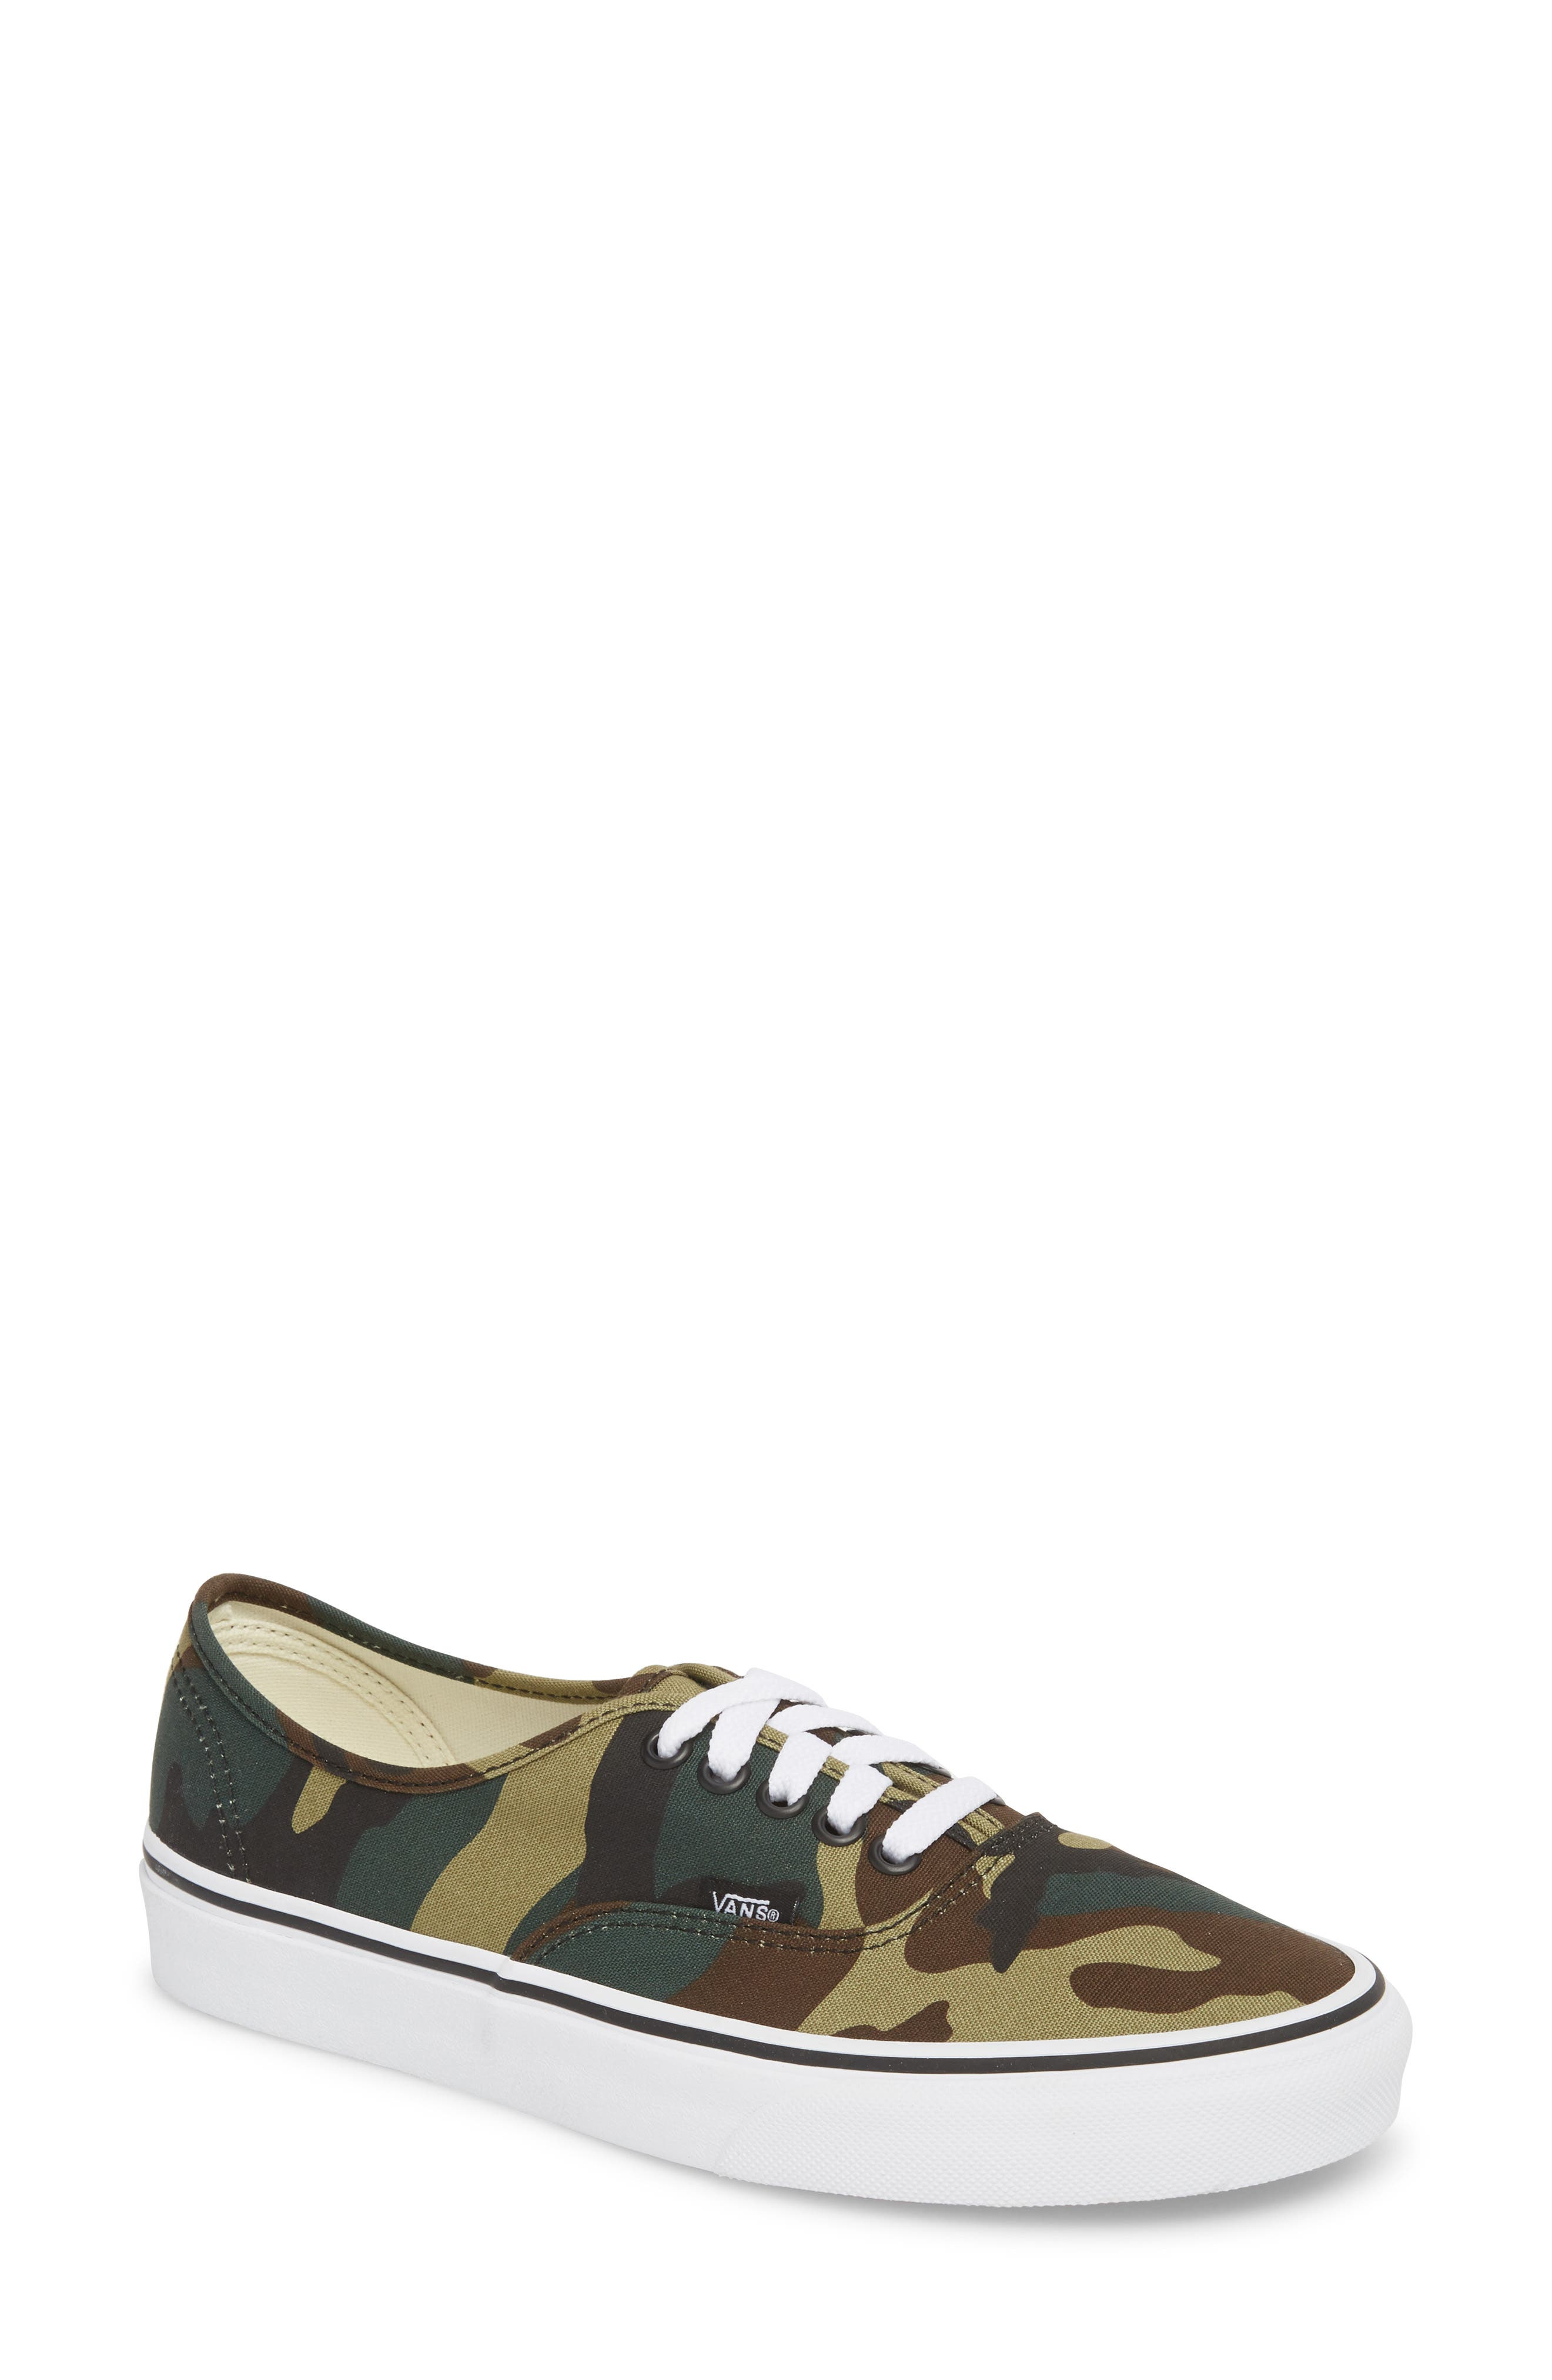 'Authentic' Sneaker,                             Main thumbnail 1, color,                             Black / Woodland